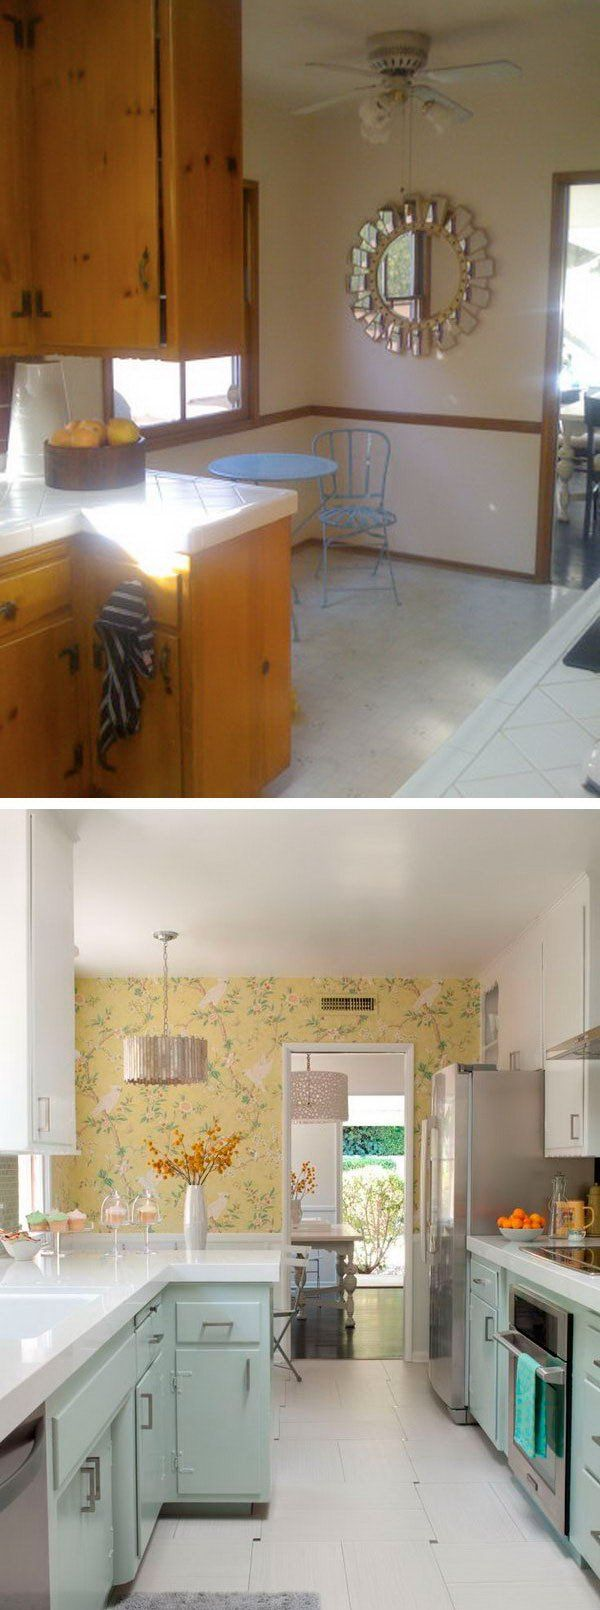 before and after 25 budget friendly kitchen makeover ideas - Budget Kitchen Ideas